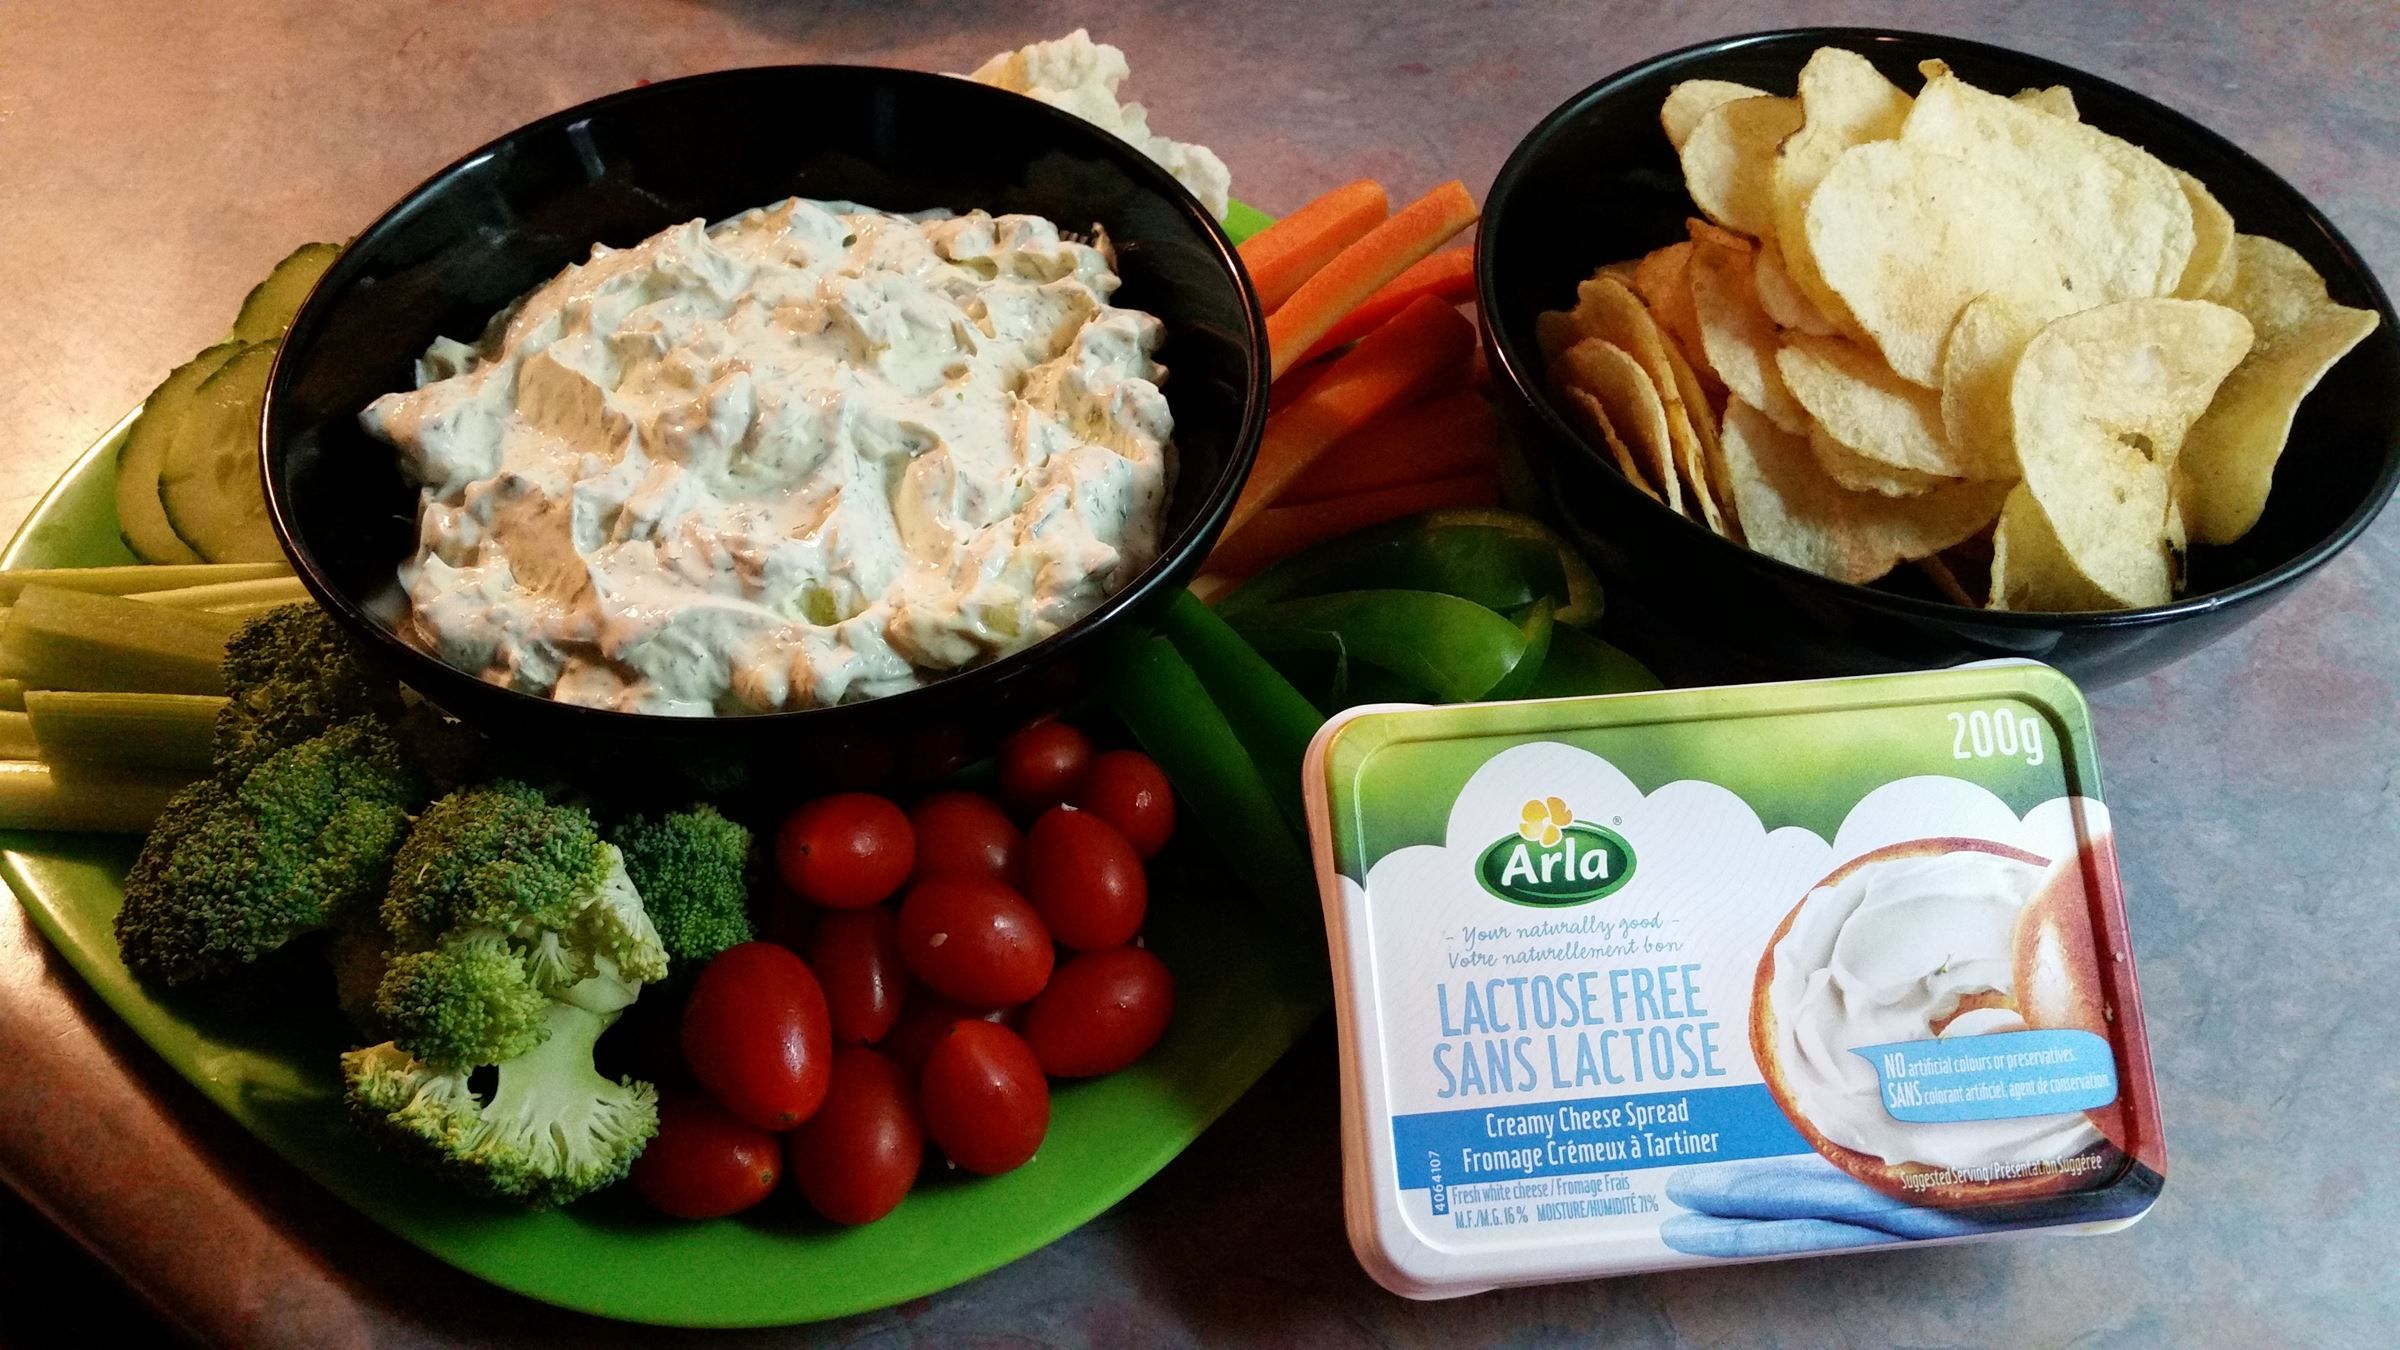 Dill pickle Dip Arla Foods dairy product provides you